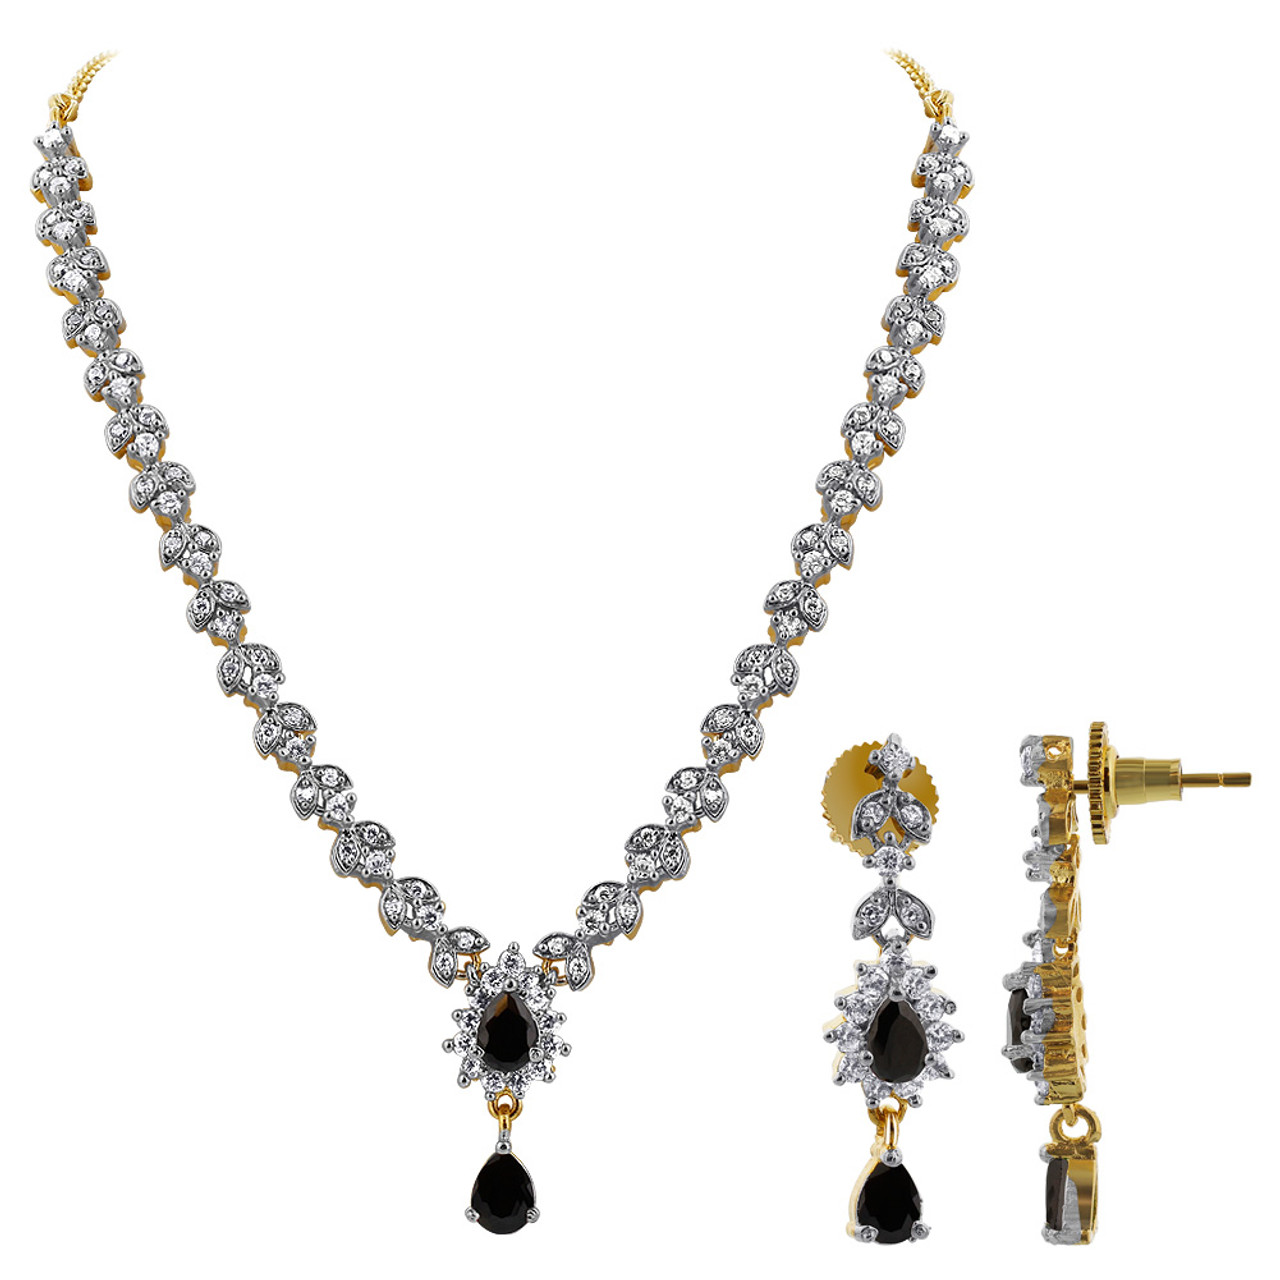 Black with CZ accents Necklace Earrings Set